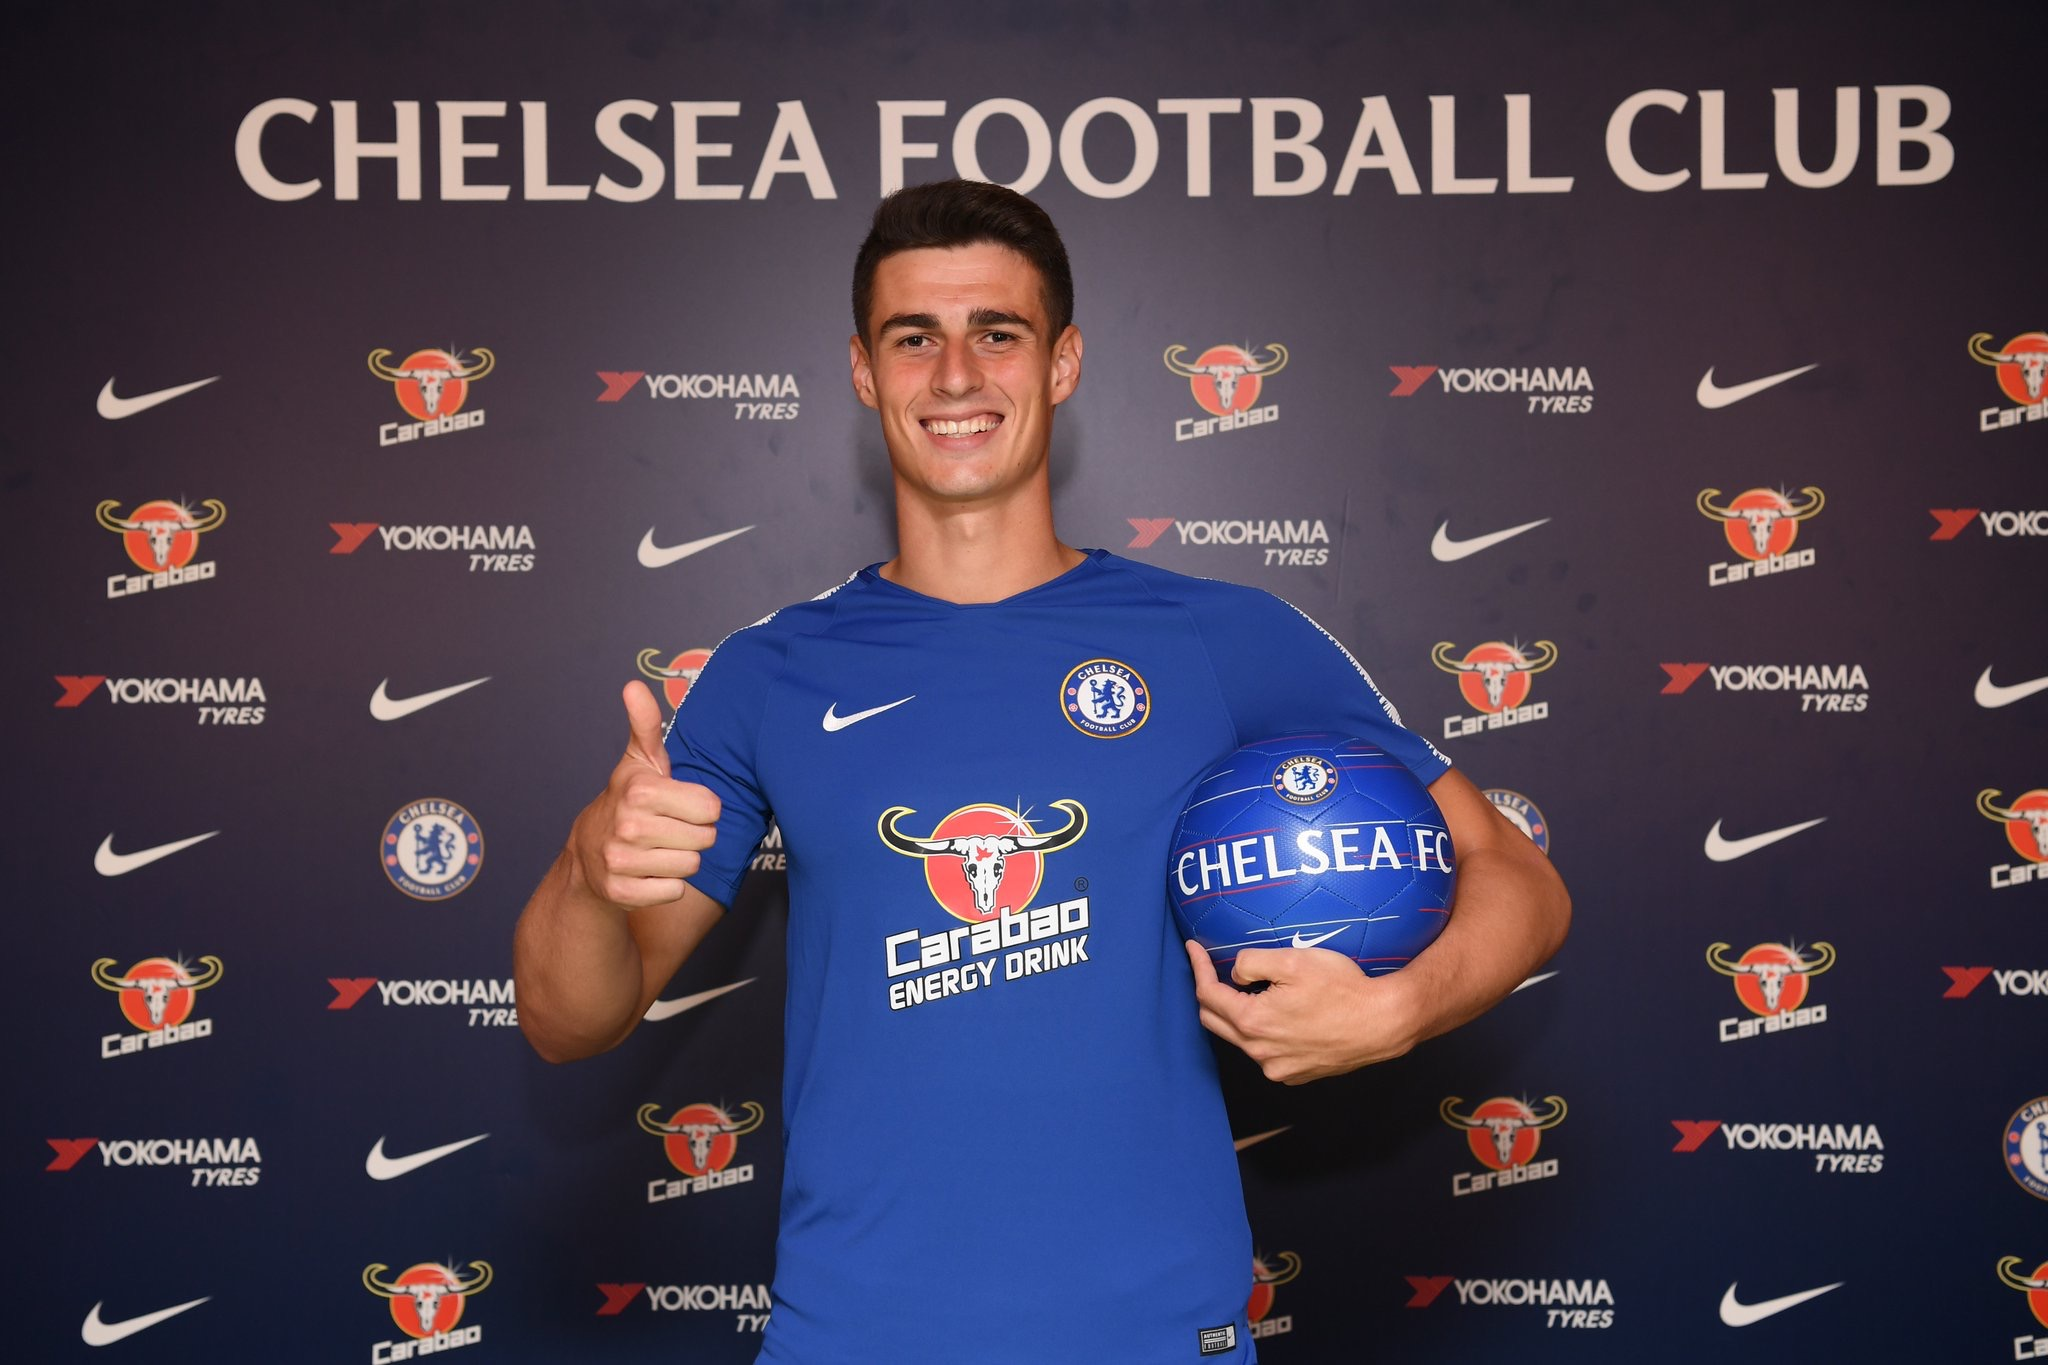 BREAKING! Chelsea sign Courtois replacement KEPA Arrizabalaga